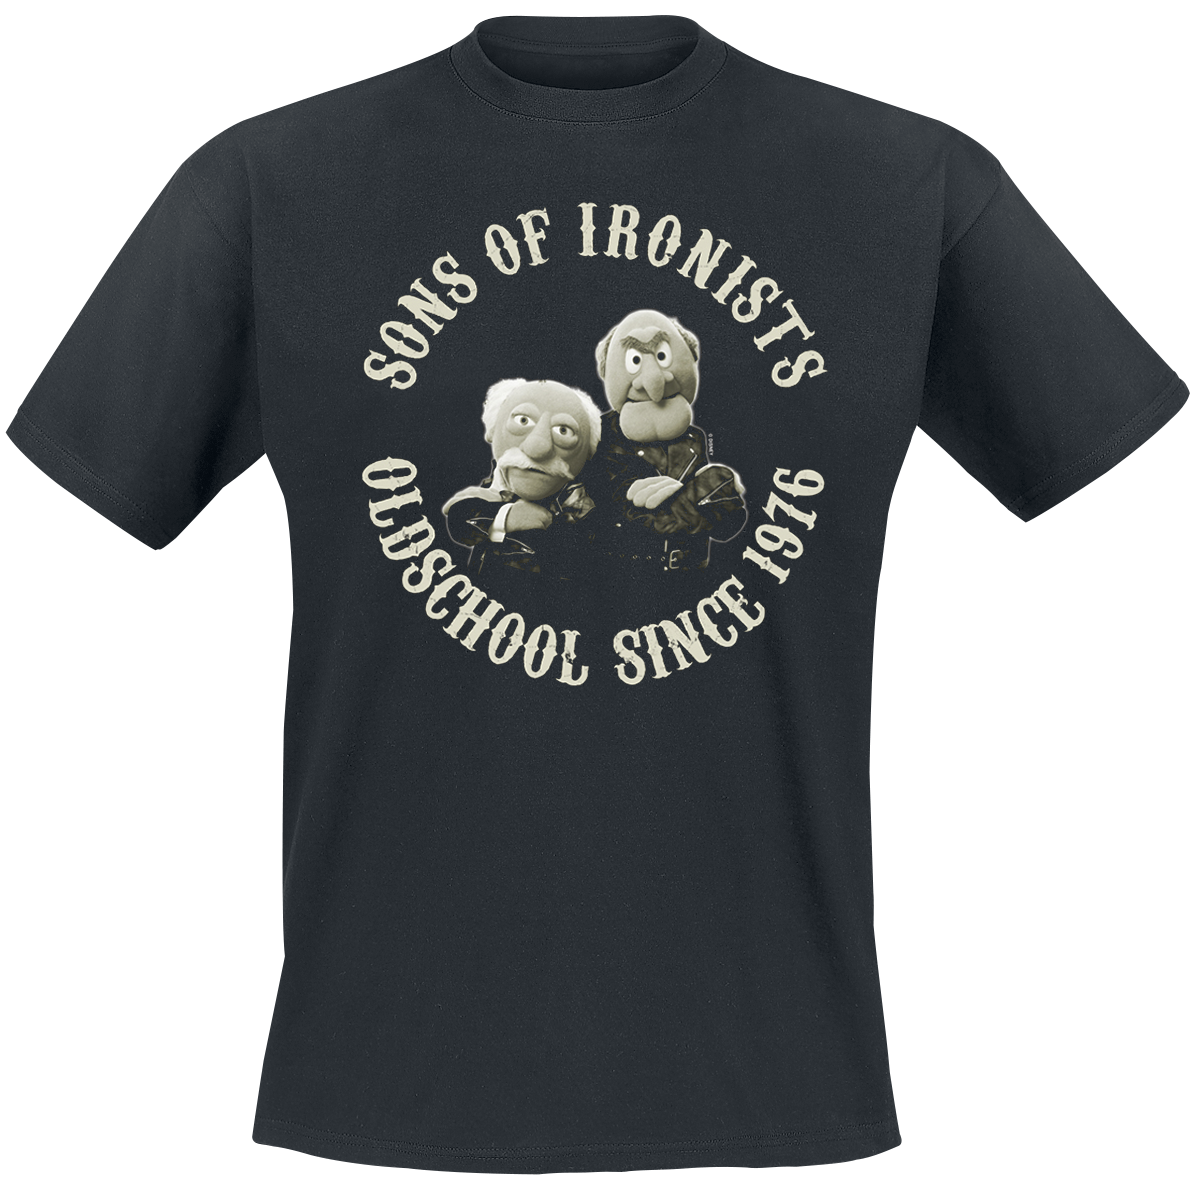 The Muppets - Sons Of Ironists - T-Shirt - black image